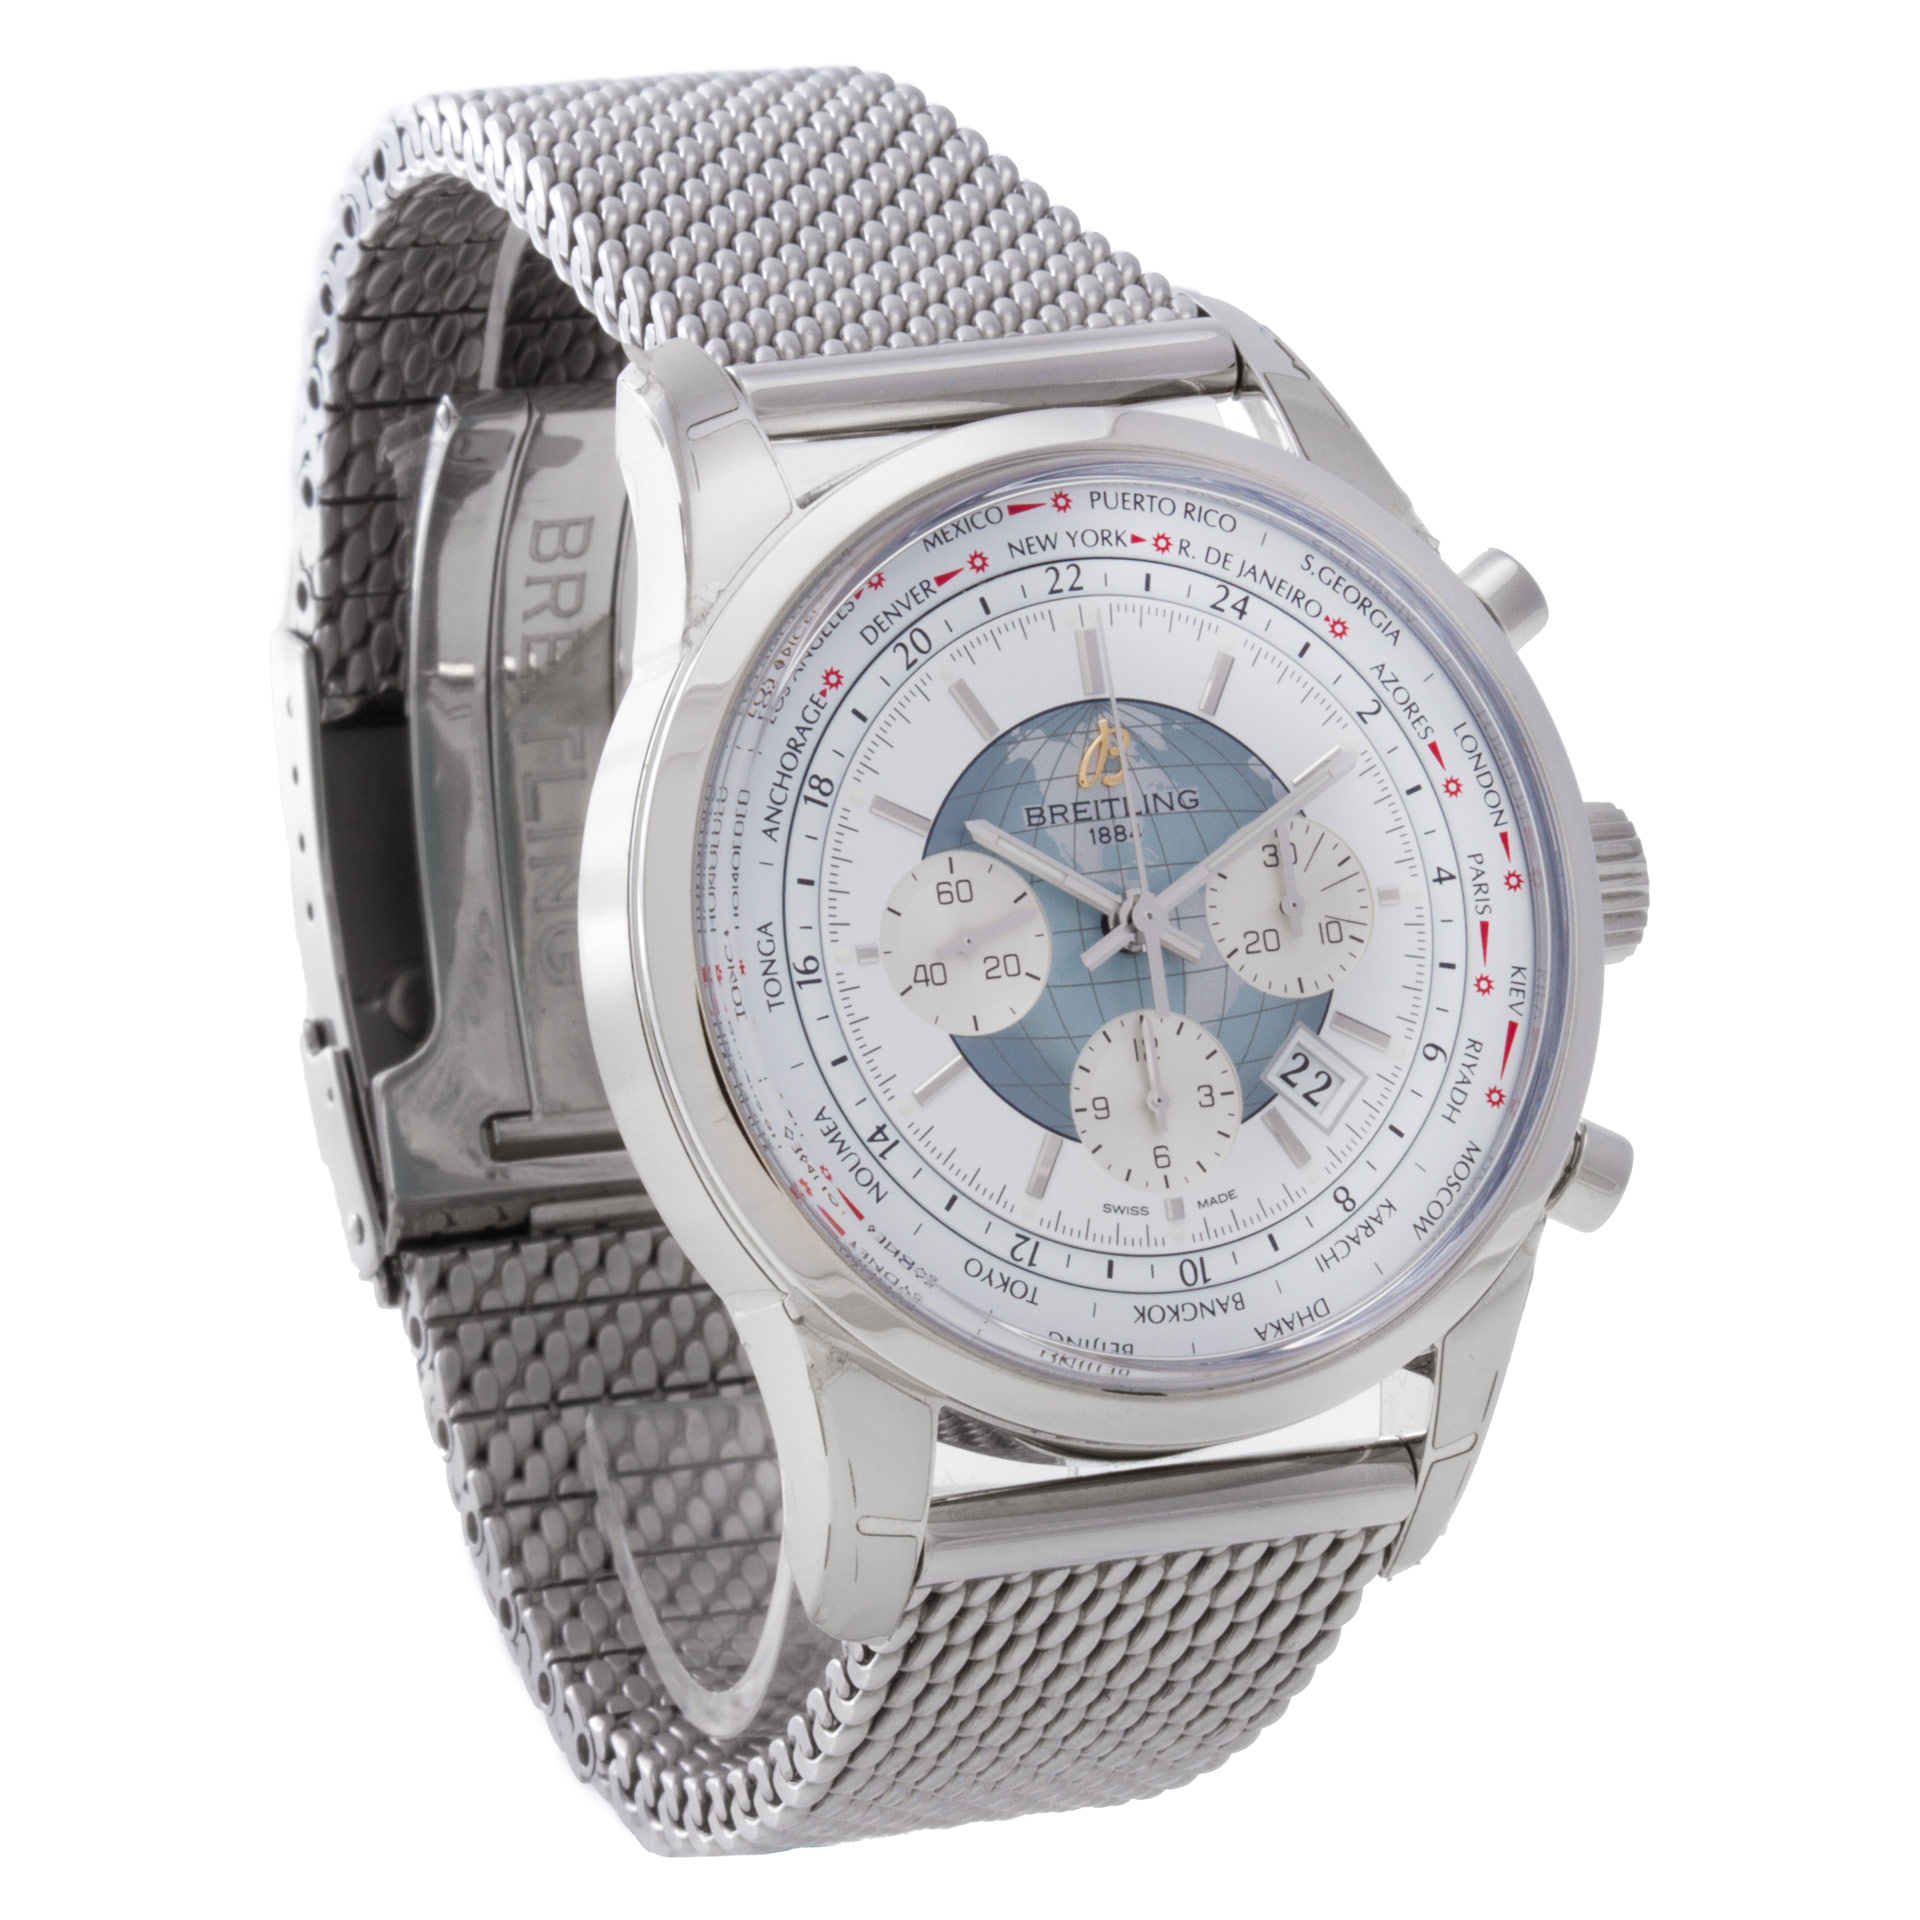 8a54390154d Details about Breitling Transocean Chronograph AB0510 stainless steel White  dial 46mm auto.